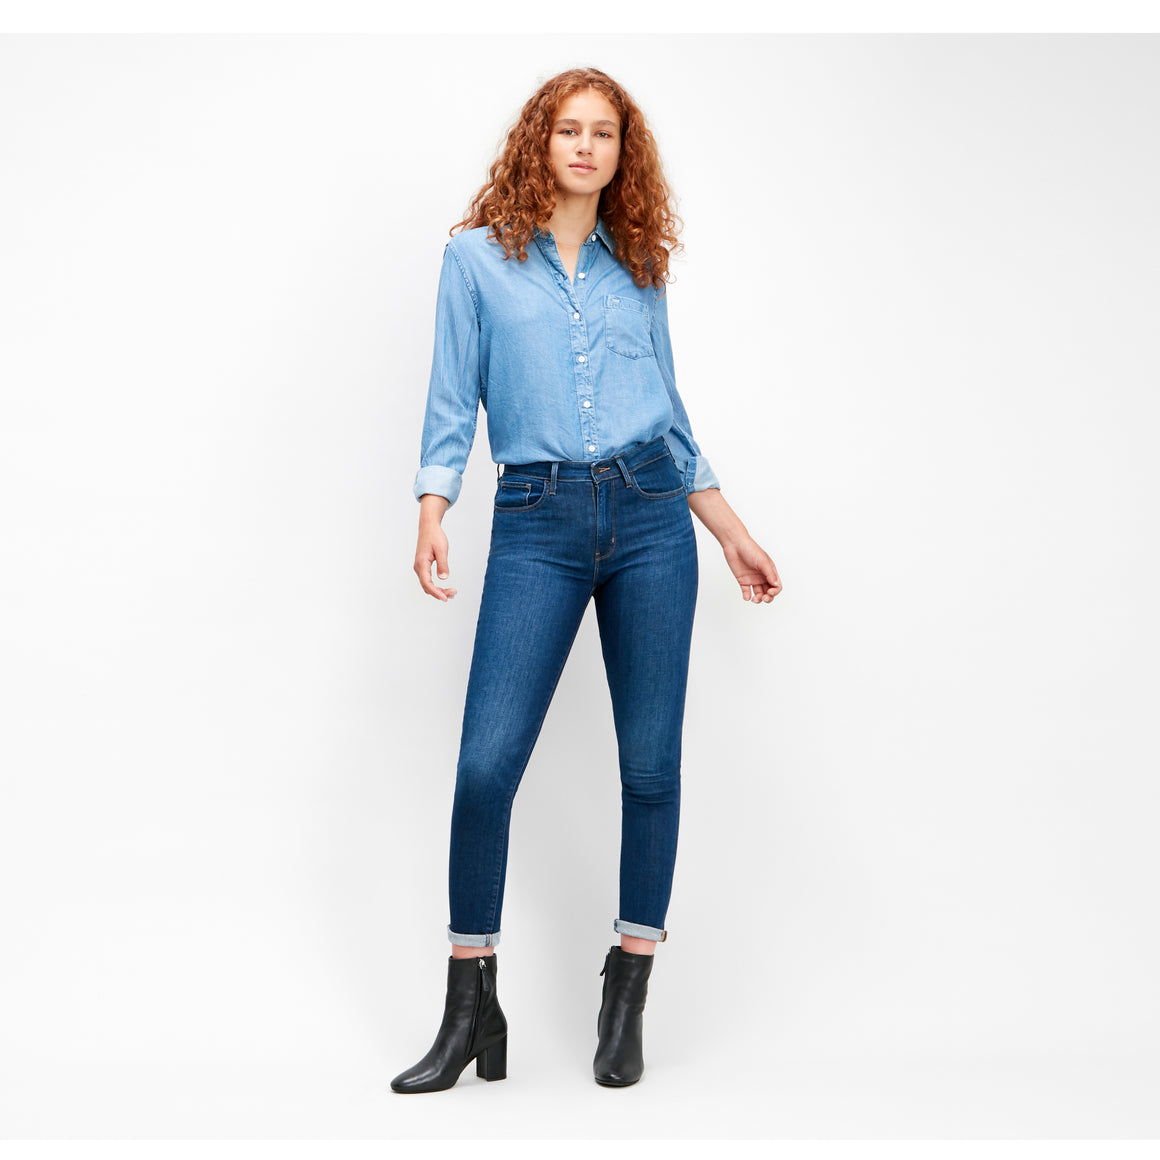 721 High Rise Skinny Jeans for Women in Out On A Limb - Blue